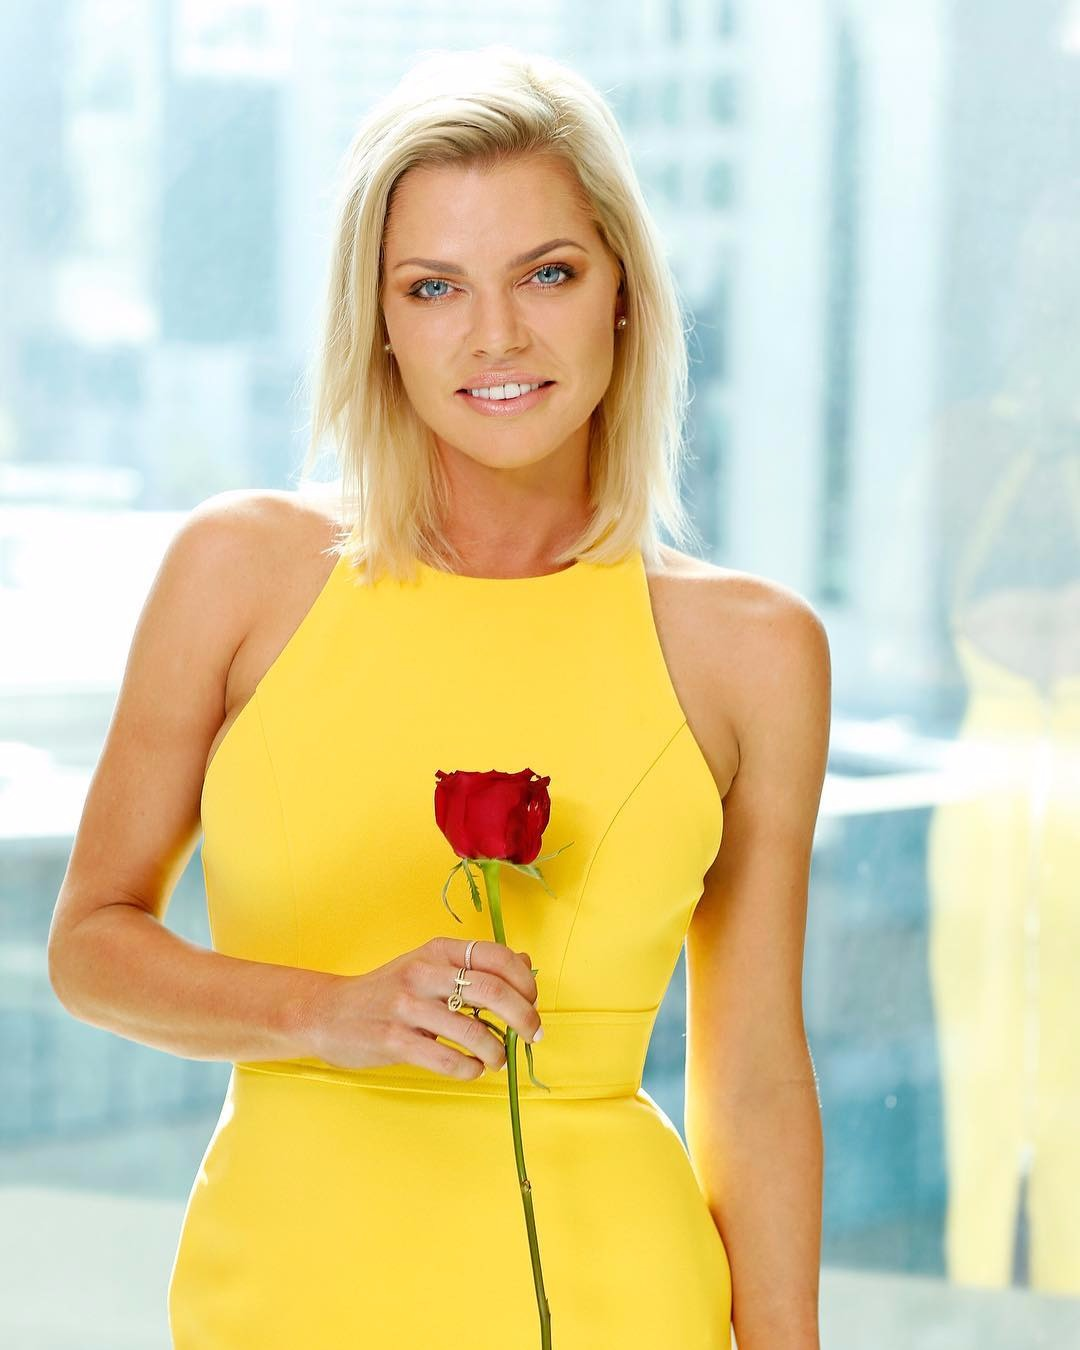 Sophie Monk posing with a rose in her hand